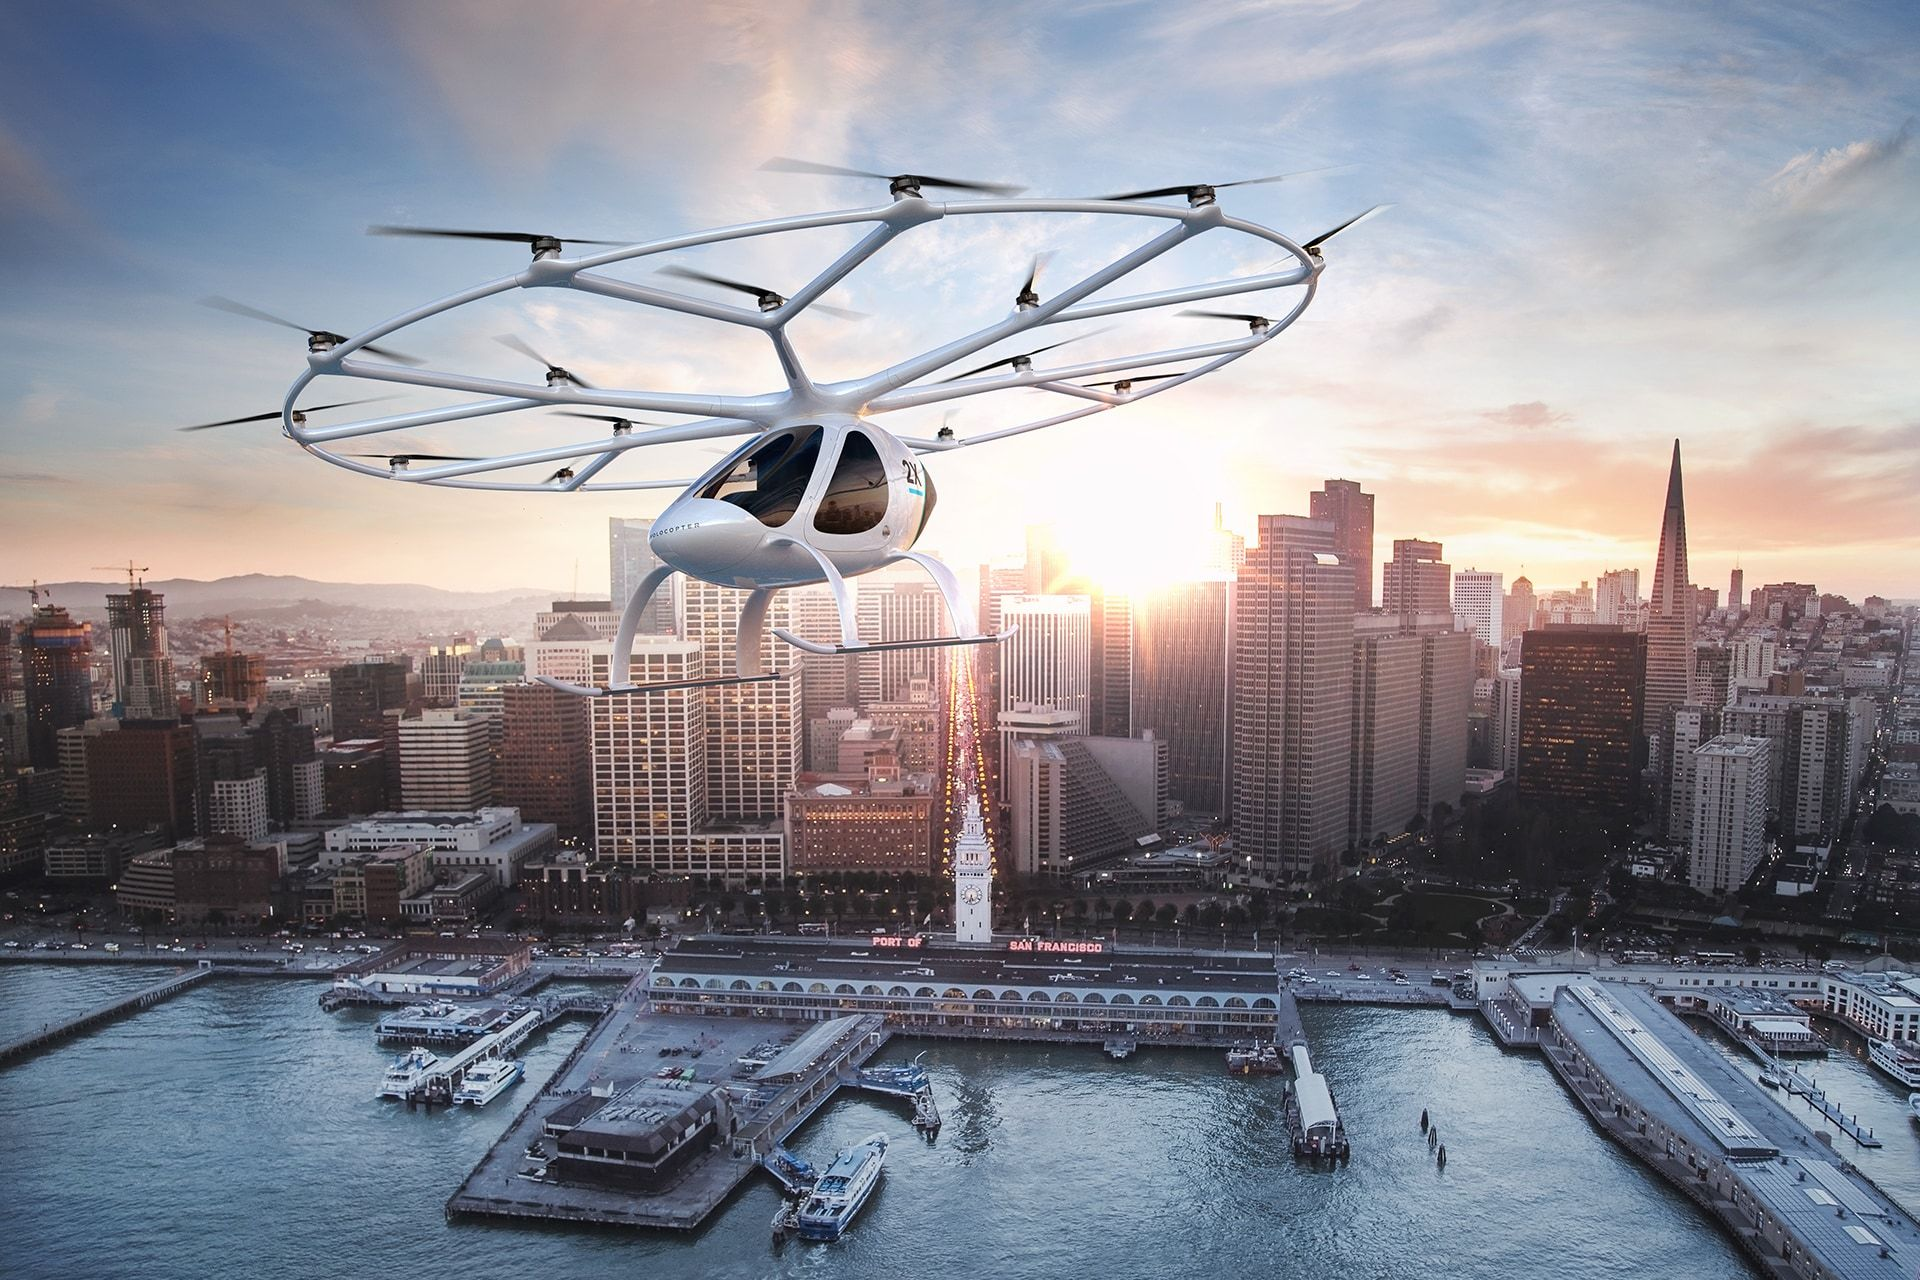 Volocopter in Aktion